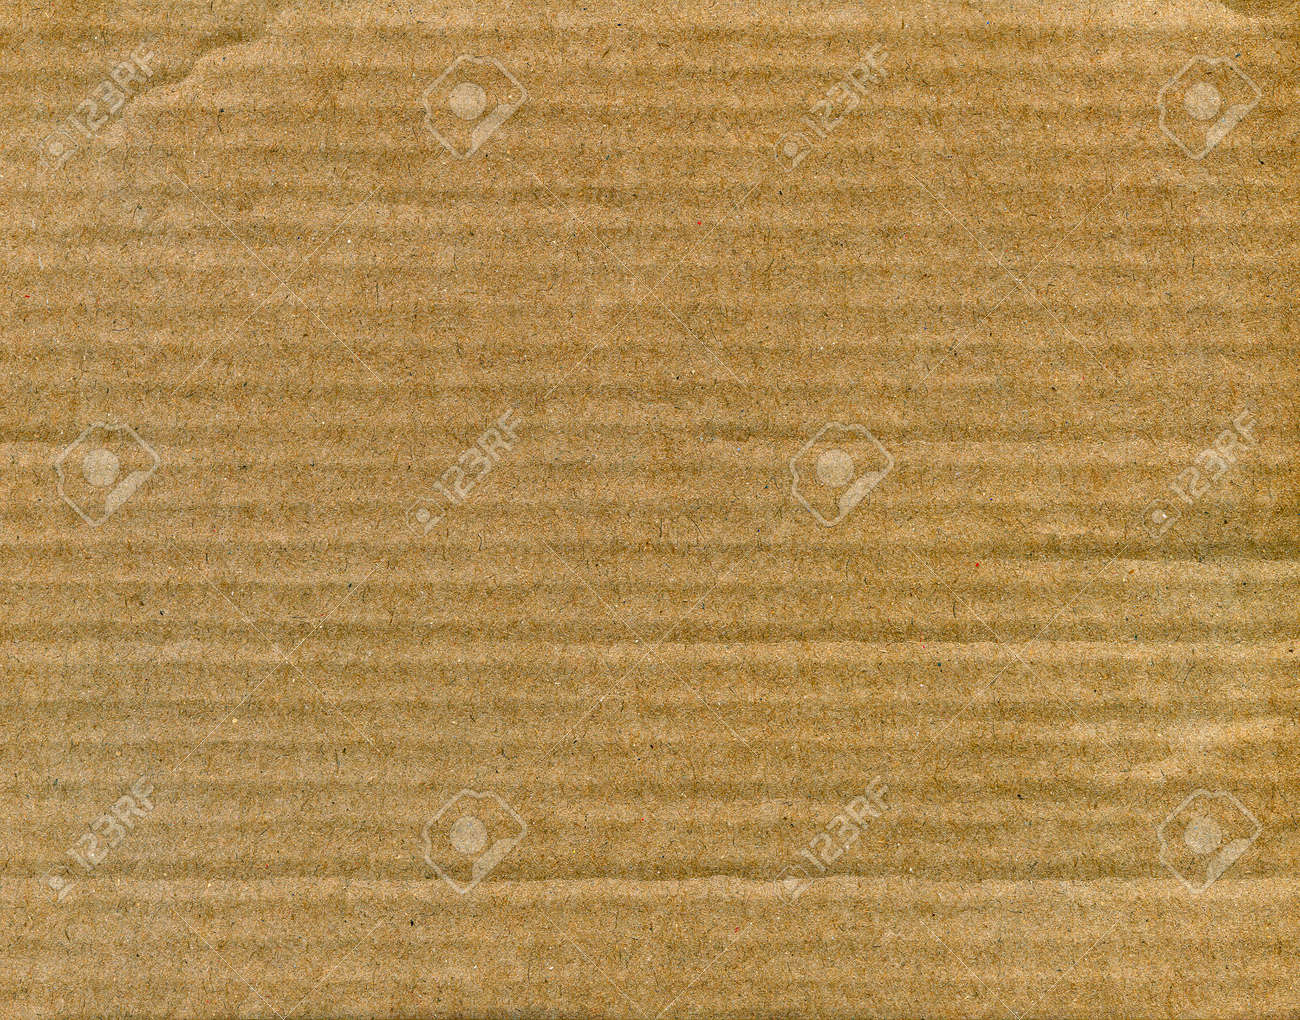 Textured striped recycled cardboard with natural fiber parts Stock Photo - 15752070